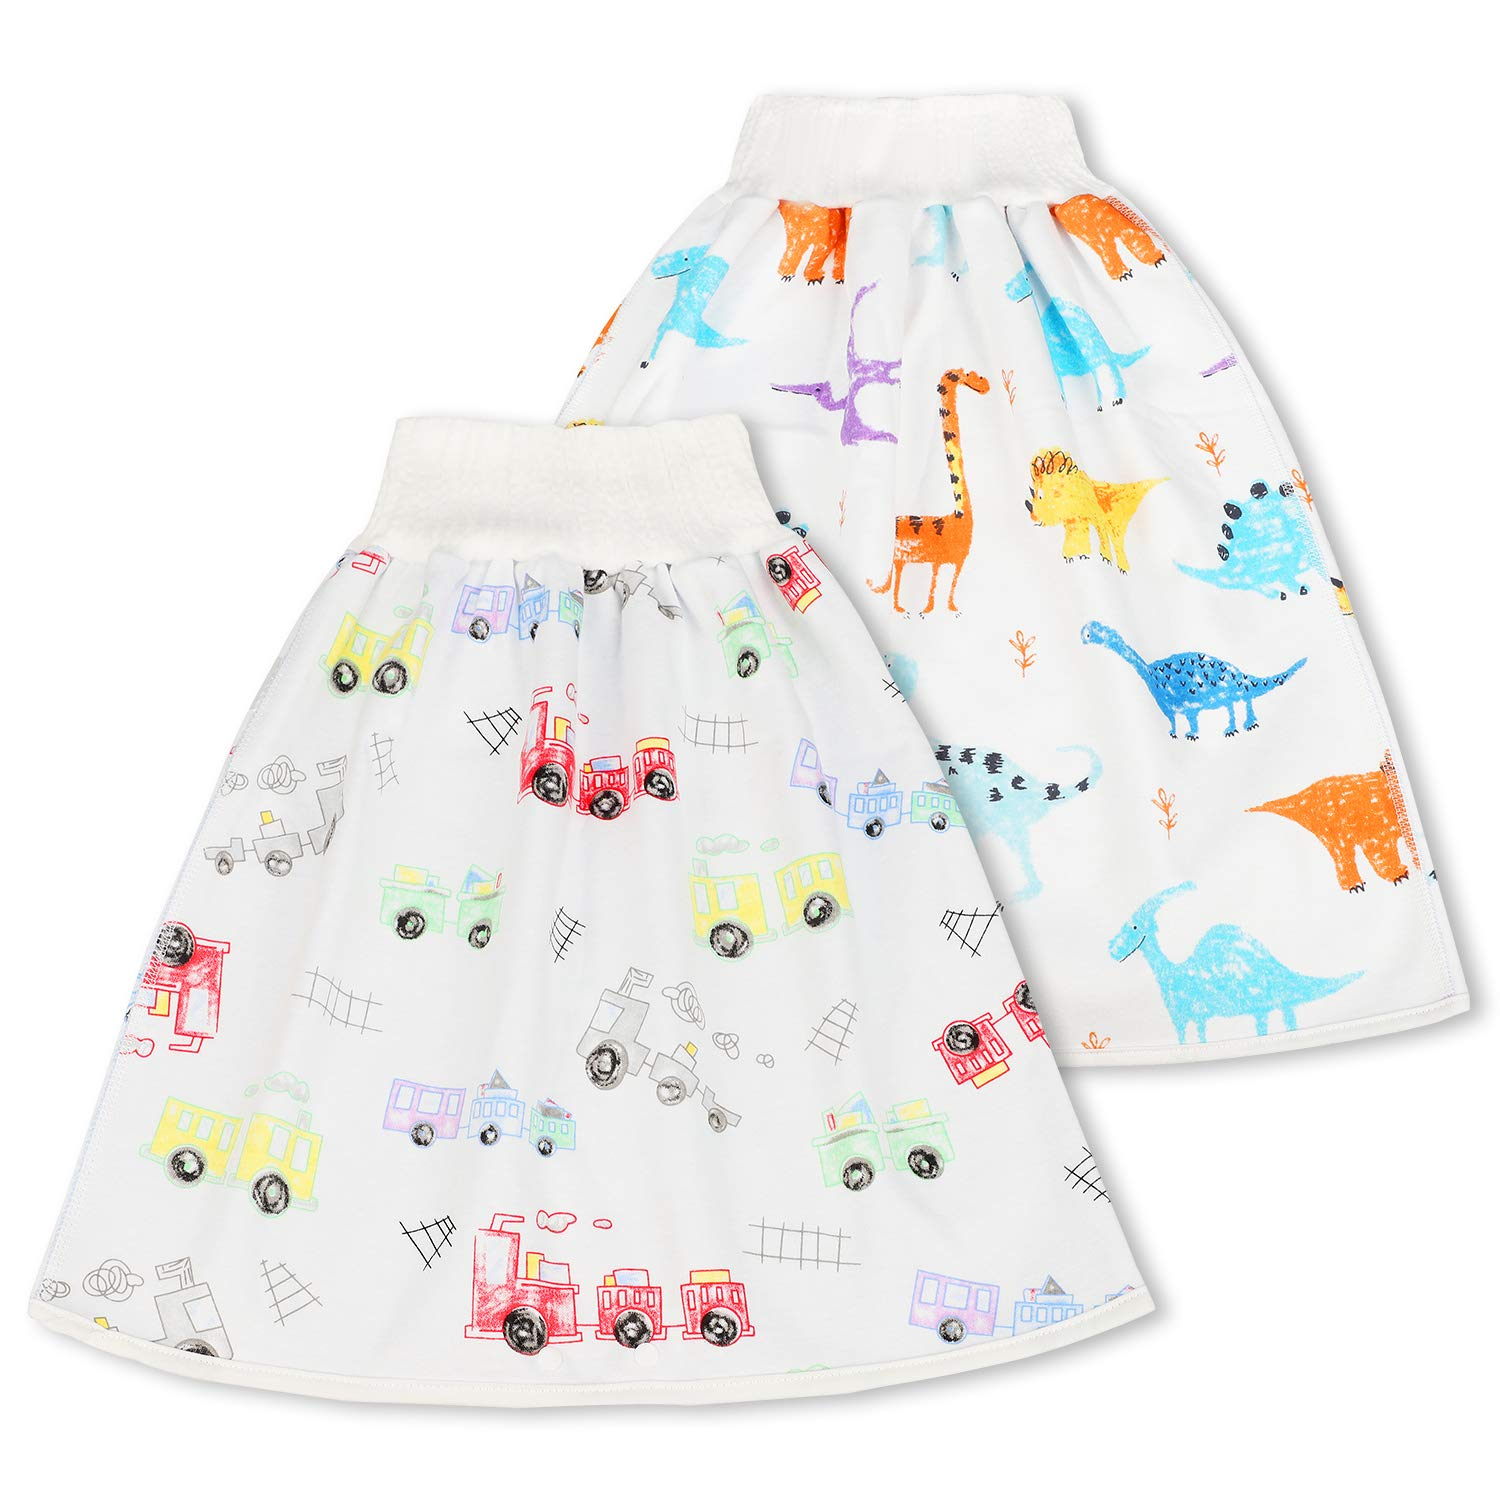 Potty Training Underwear Waterproof Bamboo Good Night Diapers Cloth Panties Washable Reusable for Baby Toddler bedwetting Training Skirt by VieGreenleaf